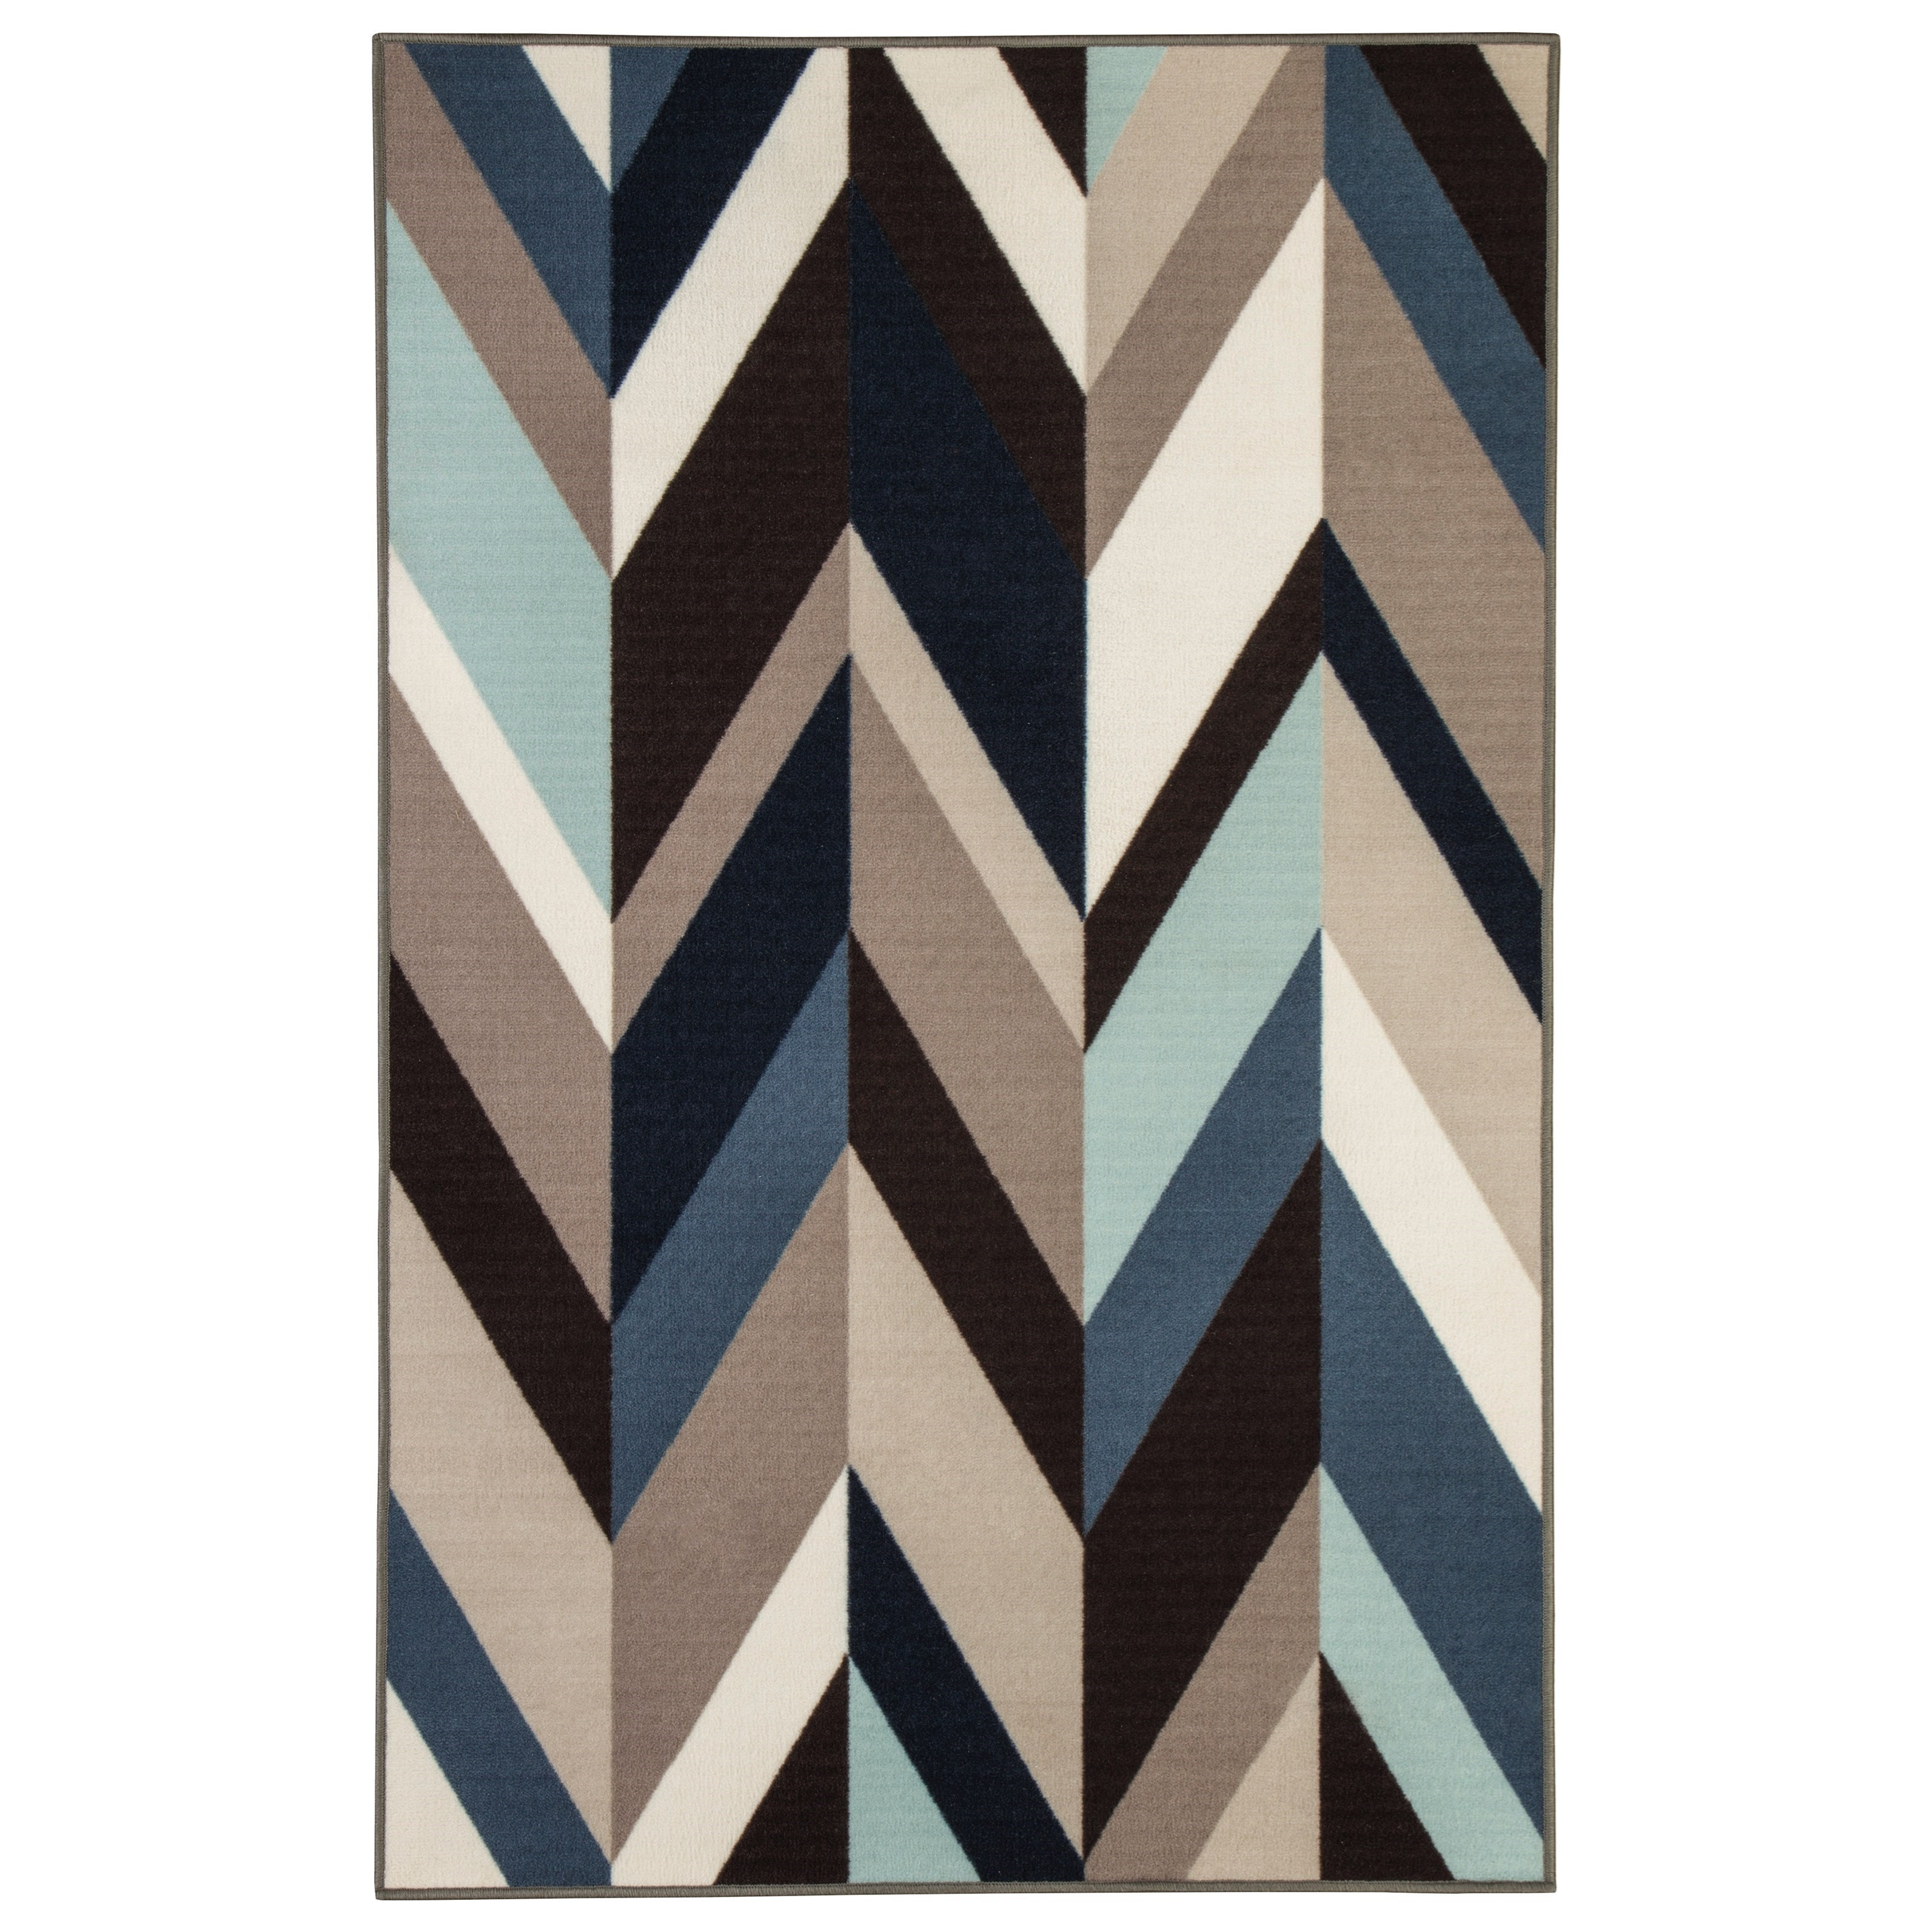 Contemporary Area Rugs Keelia Blue/Brown/Gray Rug by Signature Design by Ashley at Suburban Furniture